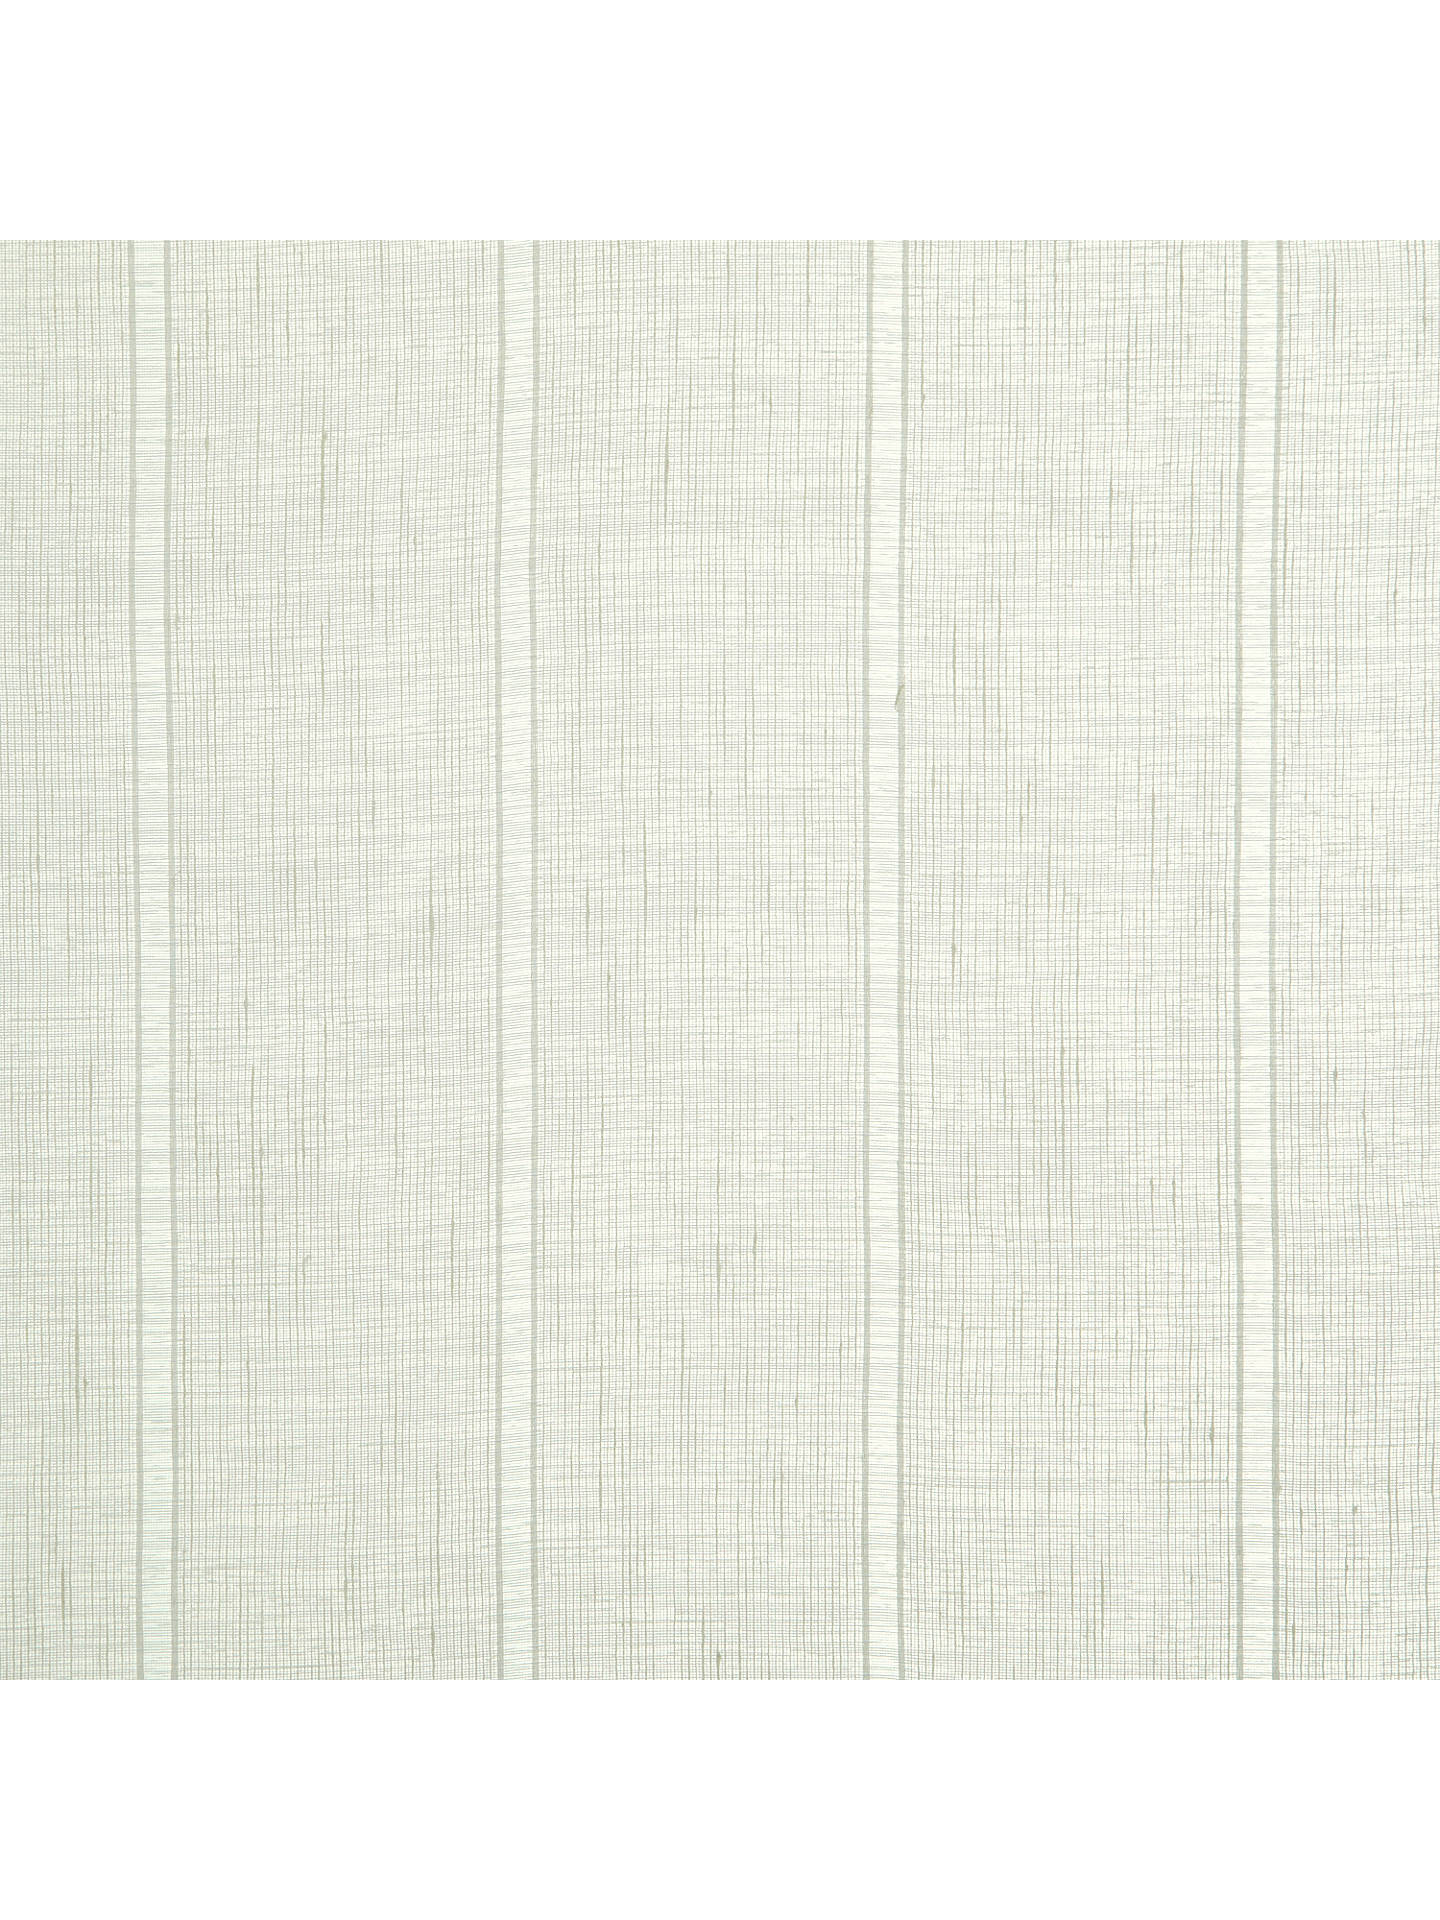 BuyJohn Lewis & Partners Ladderstitch Eyelet Top Voile Panel, White, W150 x Drop 150cm Online at johnlewis.com